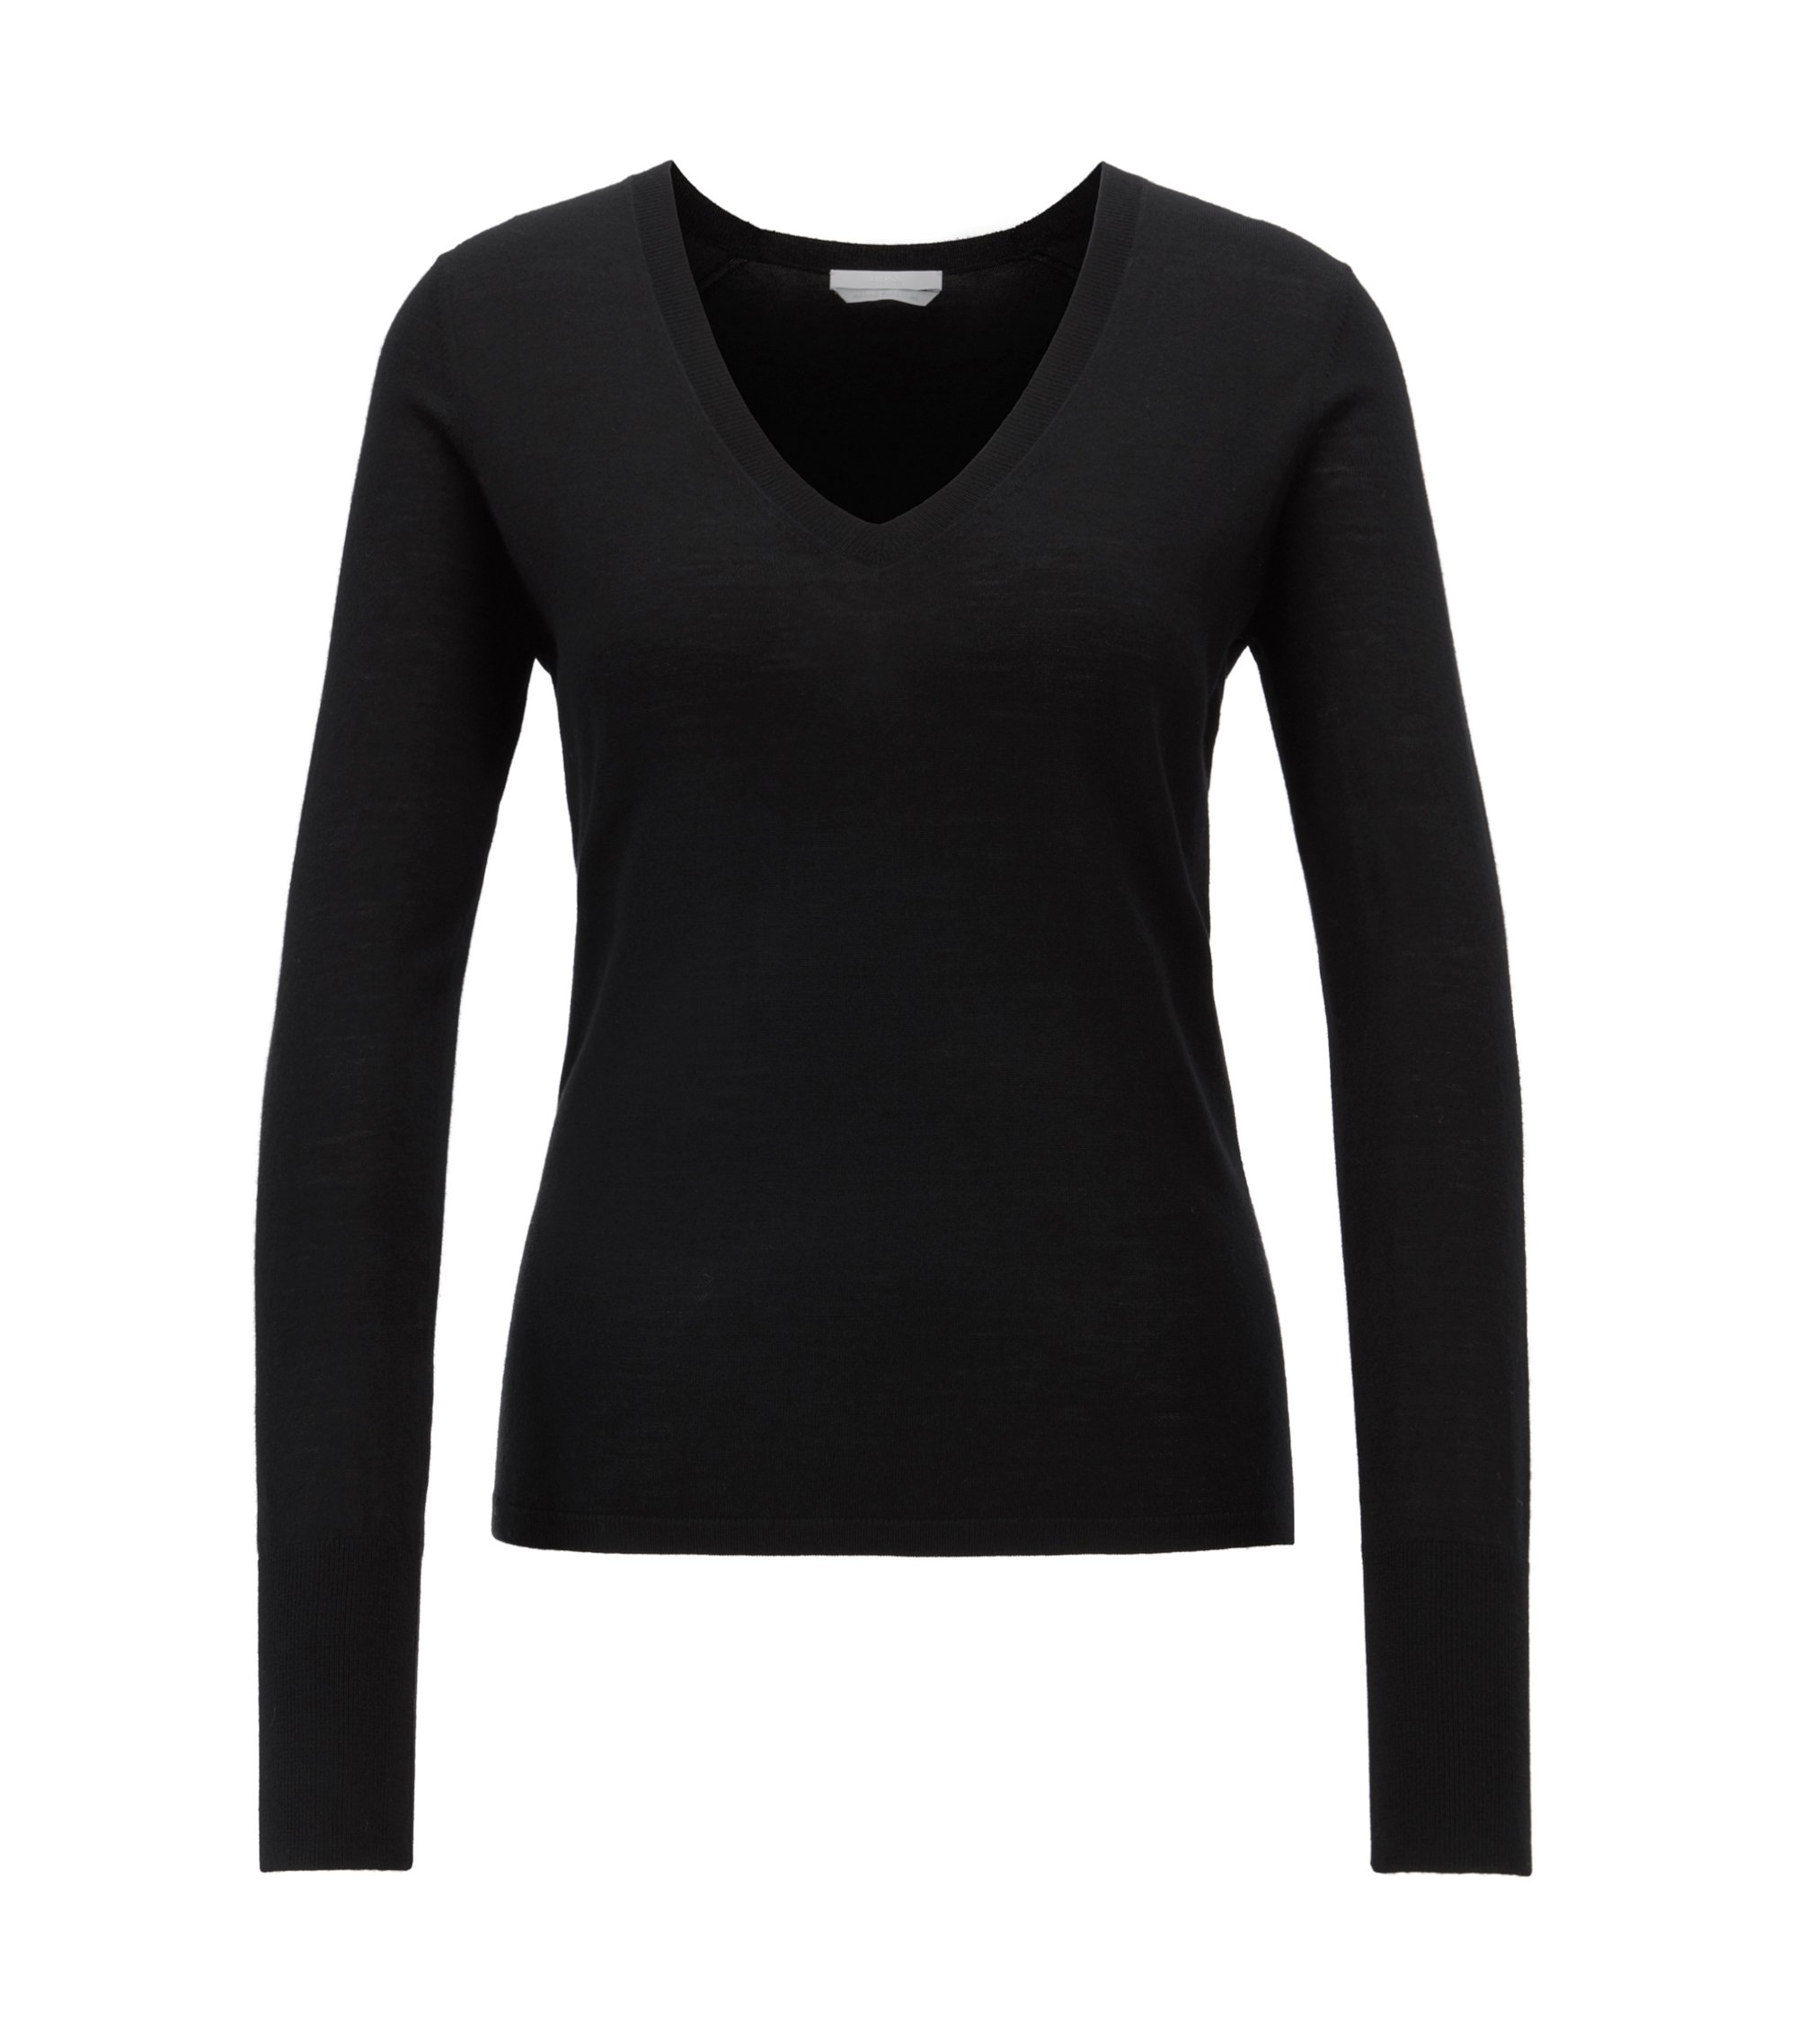 V-neck sweater in knitted virgin wool, Black